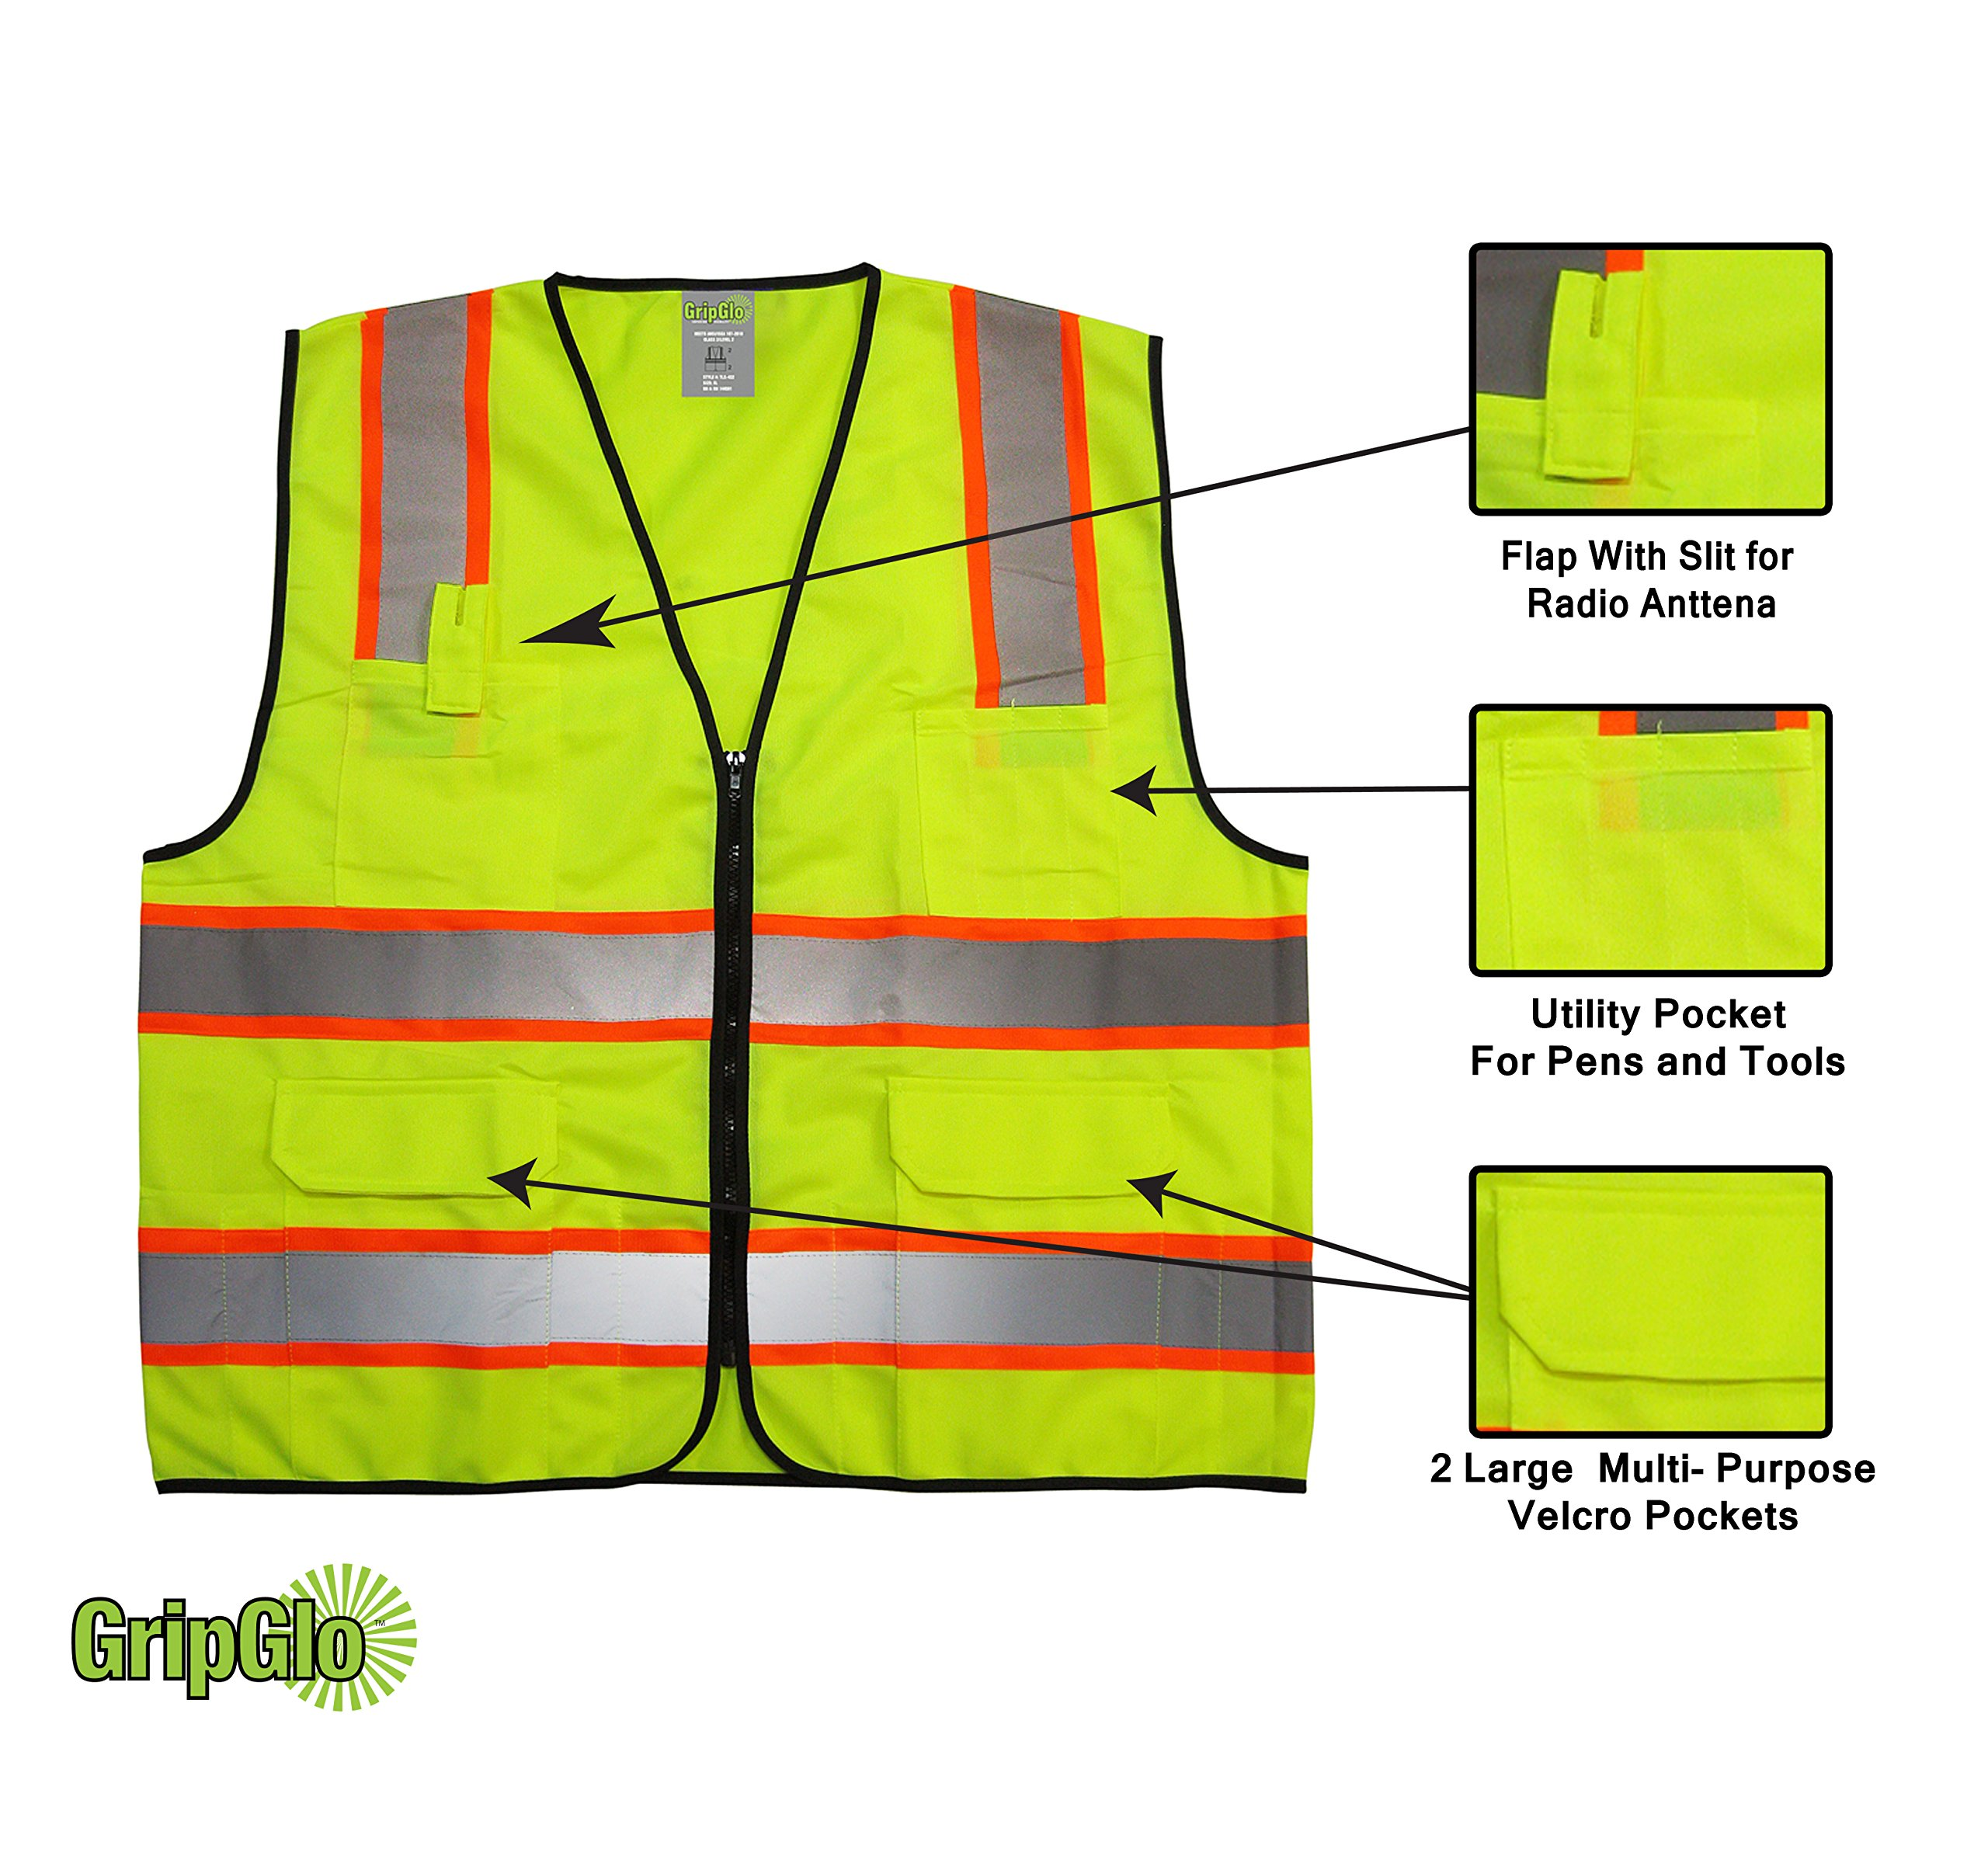 GripGlo TLS-432 Amazing High Visibility Reflective Safety Vest With 6 Multi-Functional Pockets Neon Lime Zipper Front, 2'' Reflective Strips With ORANGE TRIM For MAXIMUM VISIBILITY - Meets ANSI/ISEA 107-2010 - Class 2/Level 2 - Large by GripGlo™ (Image #3)